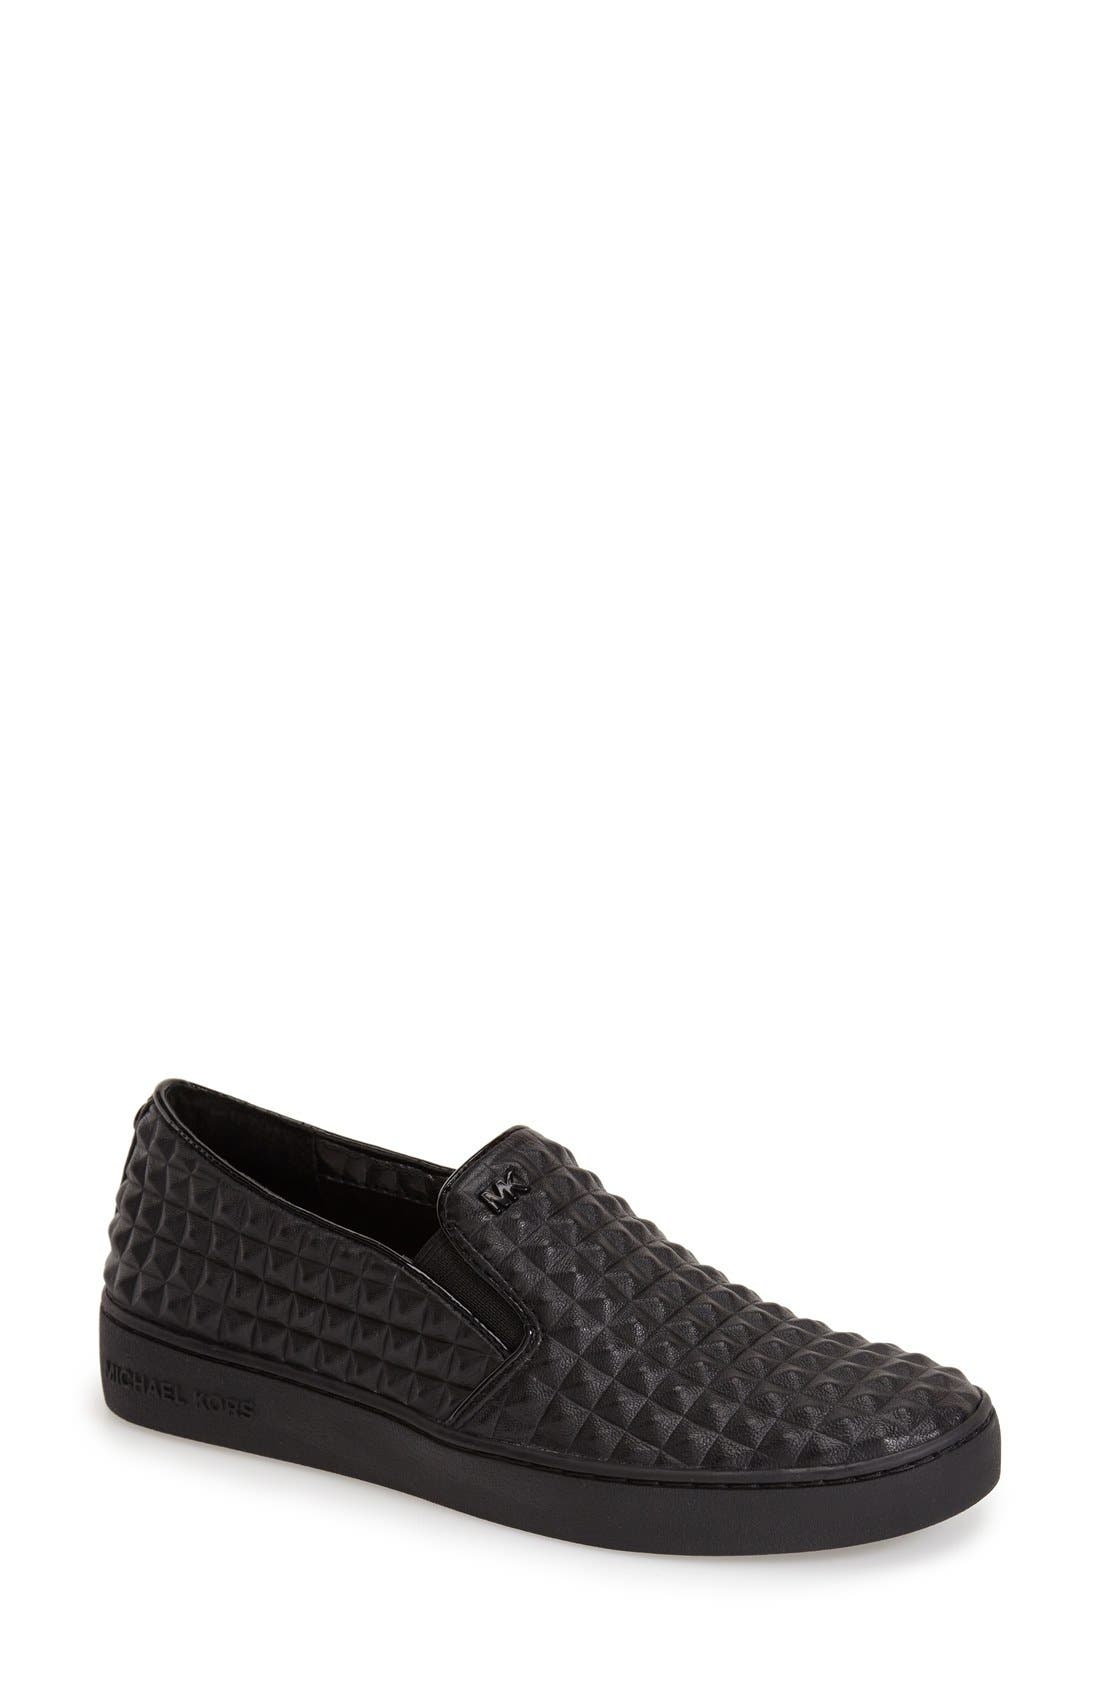 Alternate Image 1 Selected - MICHAEL Michael Kors 'Pratt' Studded Slip-On Sneaker (Women)